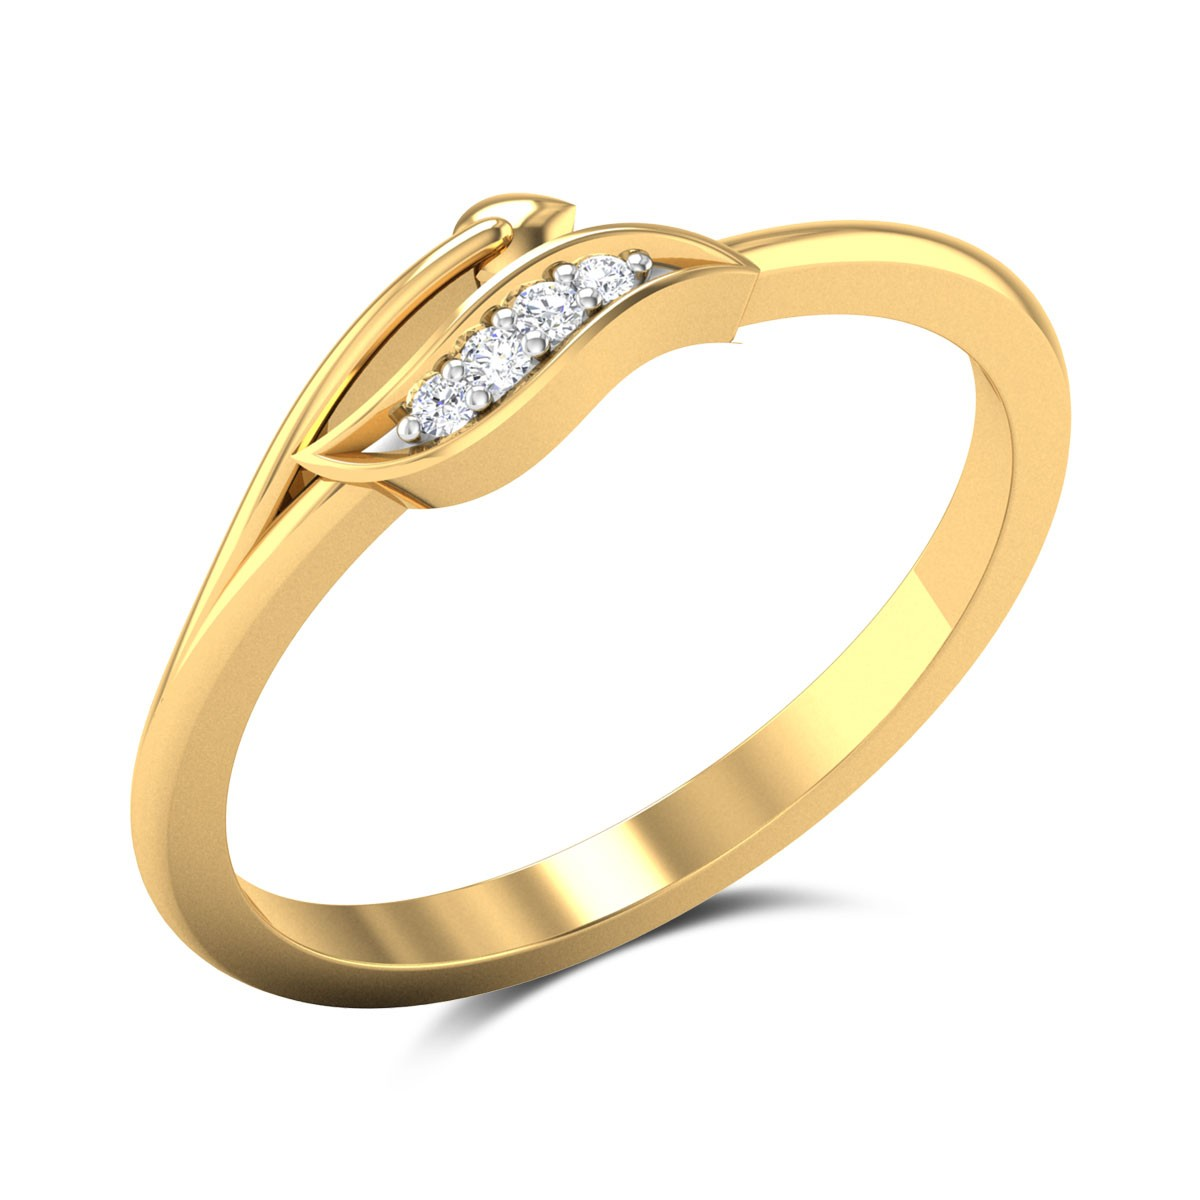 Oliva Diamond Studded Gold Ring DJRN5286